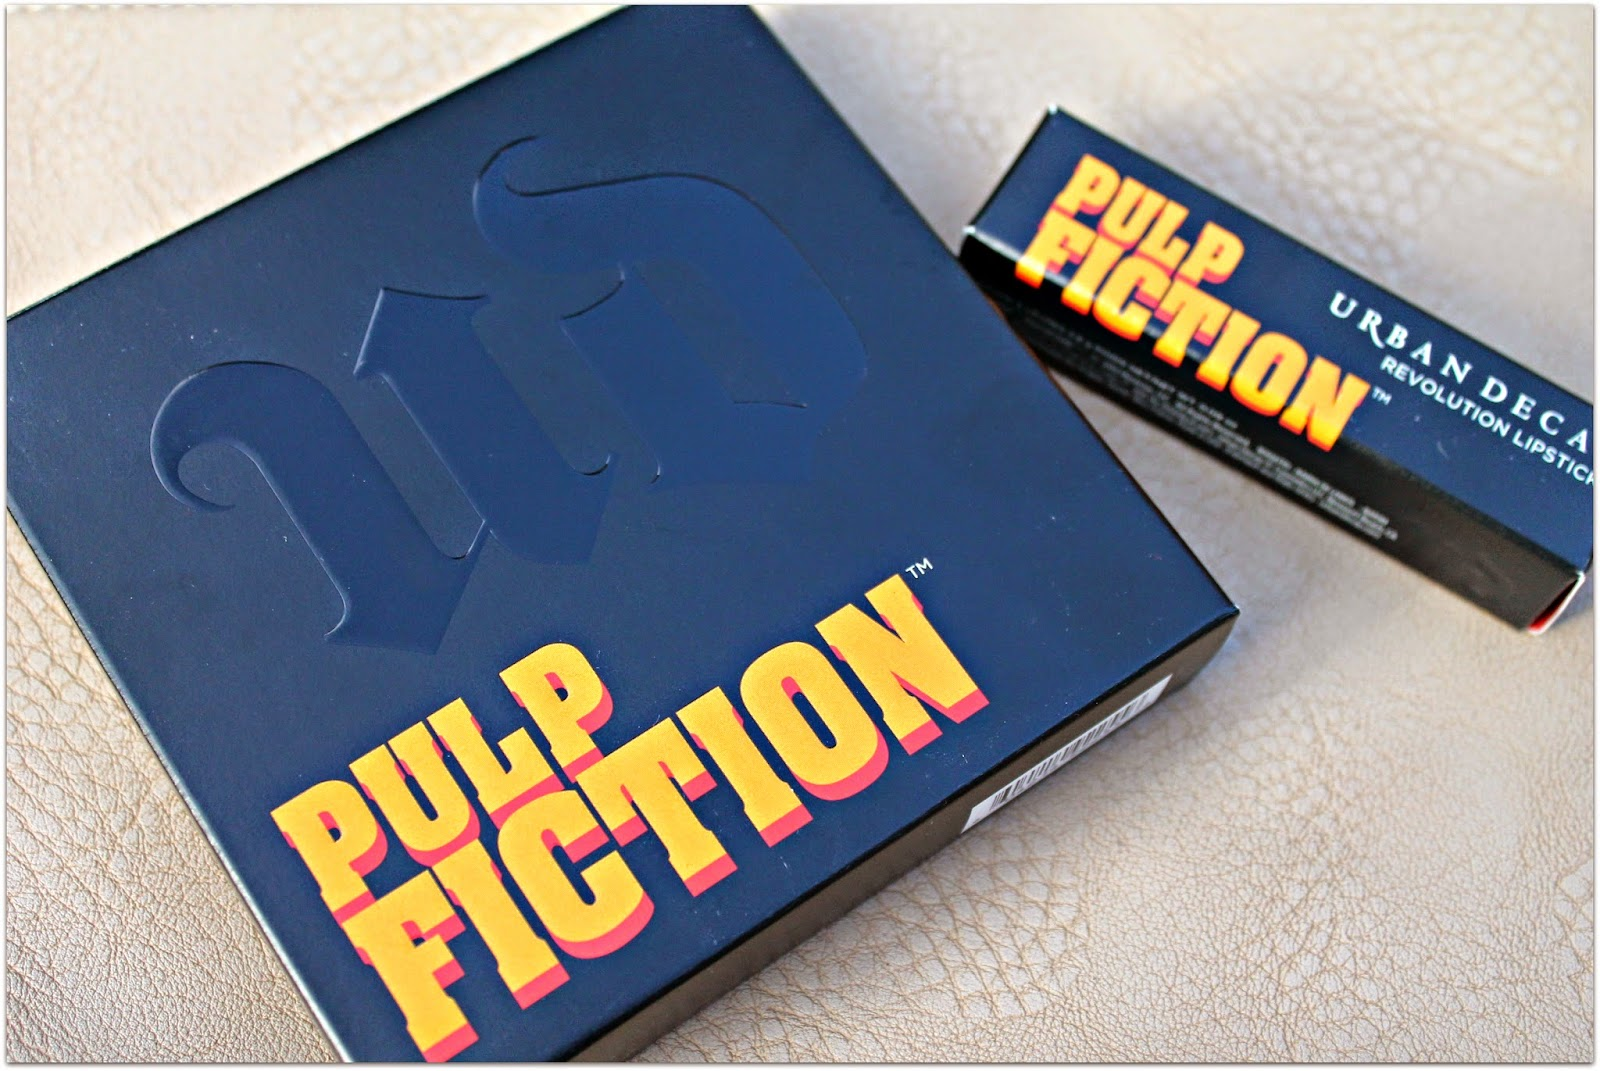 Urban Decay Pulp Fiction Palette & Lipstick